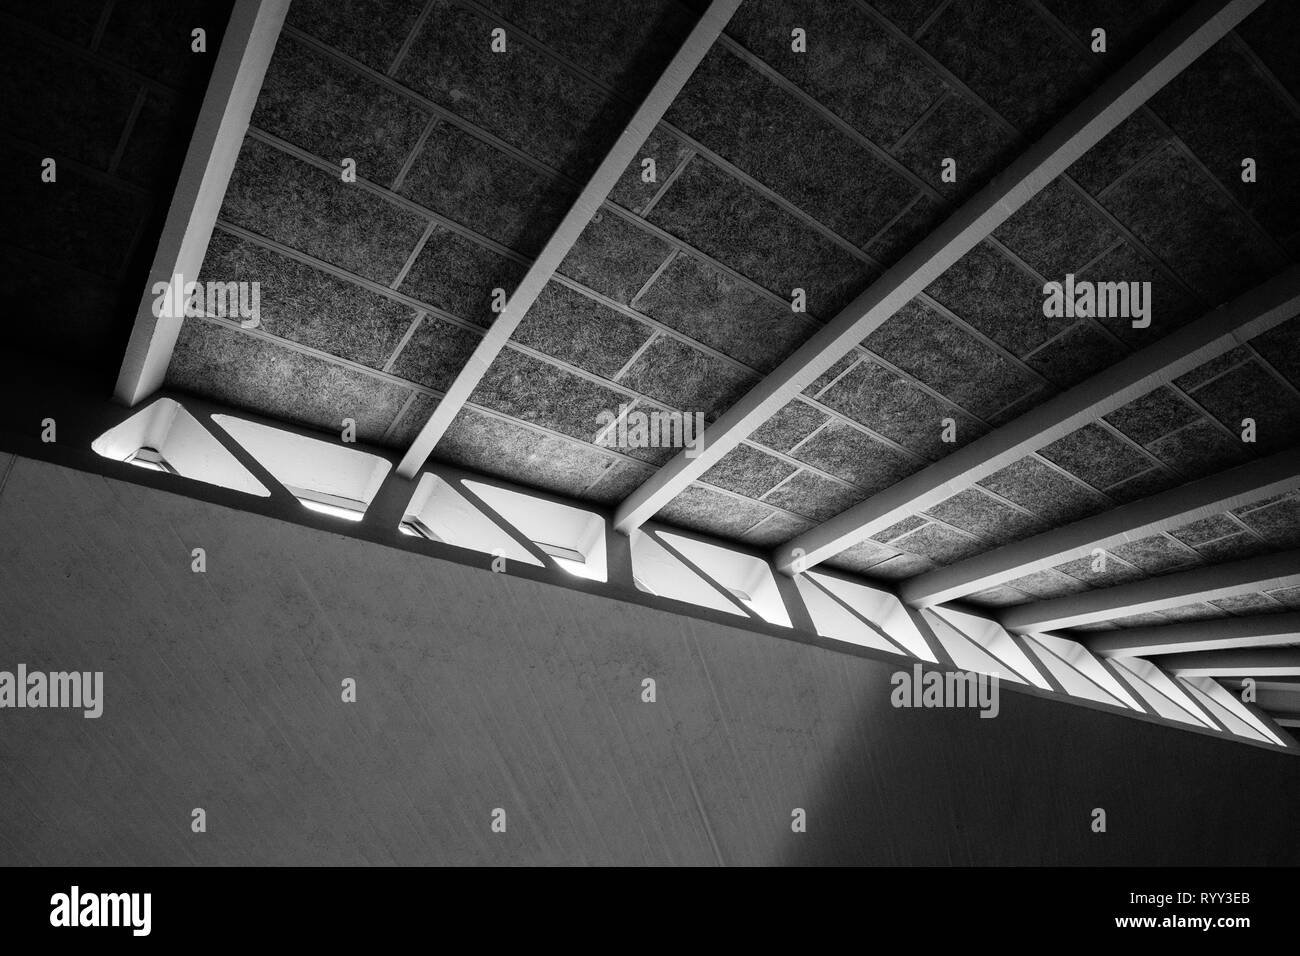 Architectural ceiling and window detail. Urban print, high contrast black and white, London Stock Photo